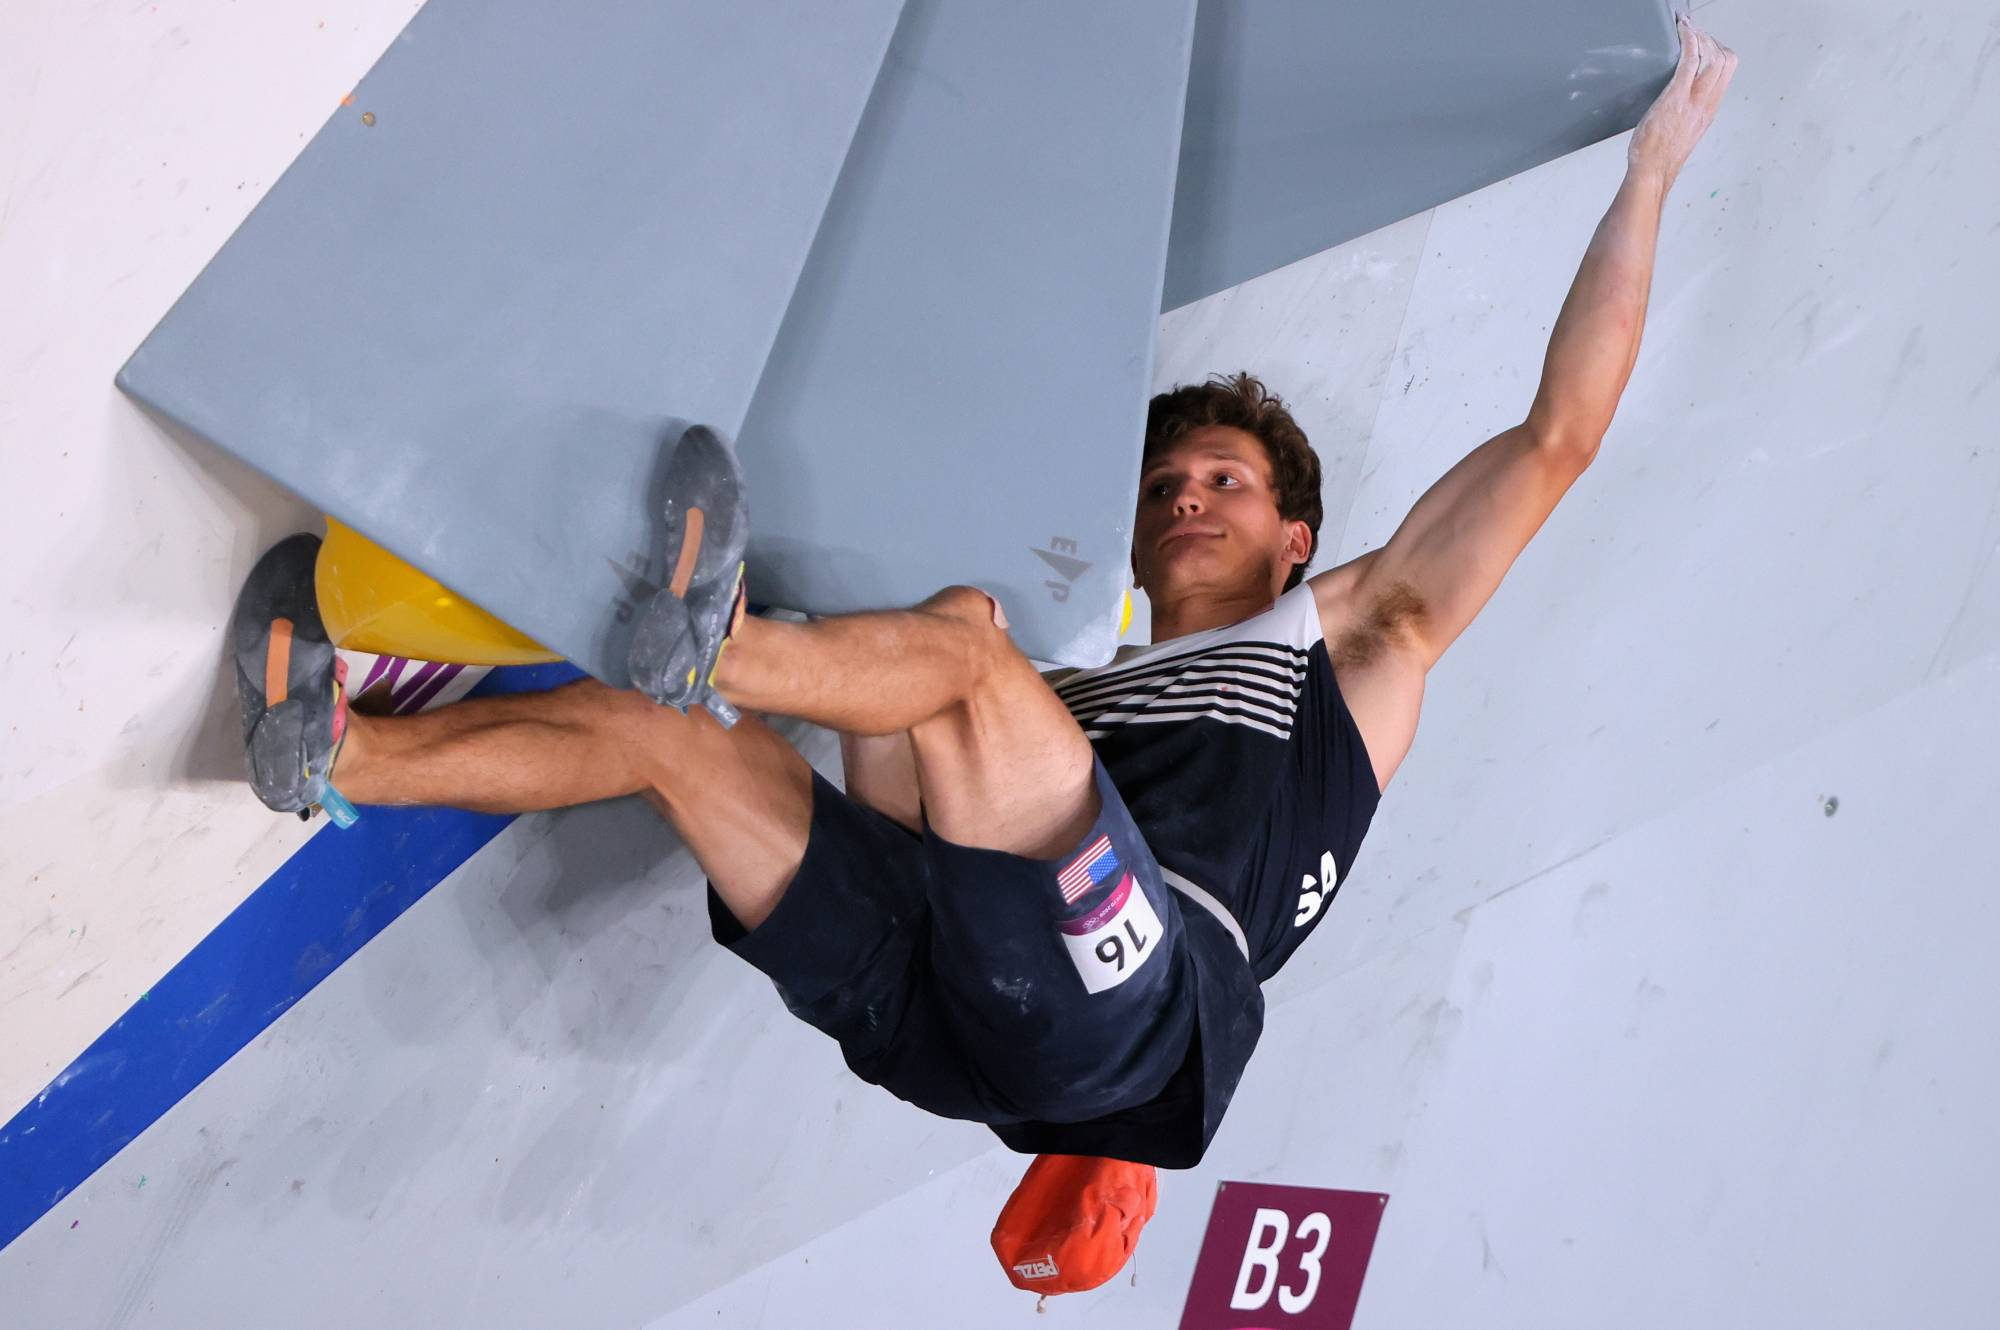 Nathaniel Coleman of the United States was the only climber to reach the goal on two boulders during the bouldering competition. | REUTERS